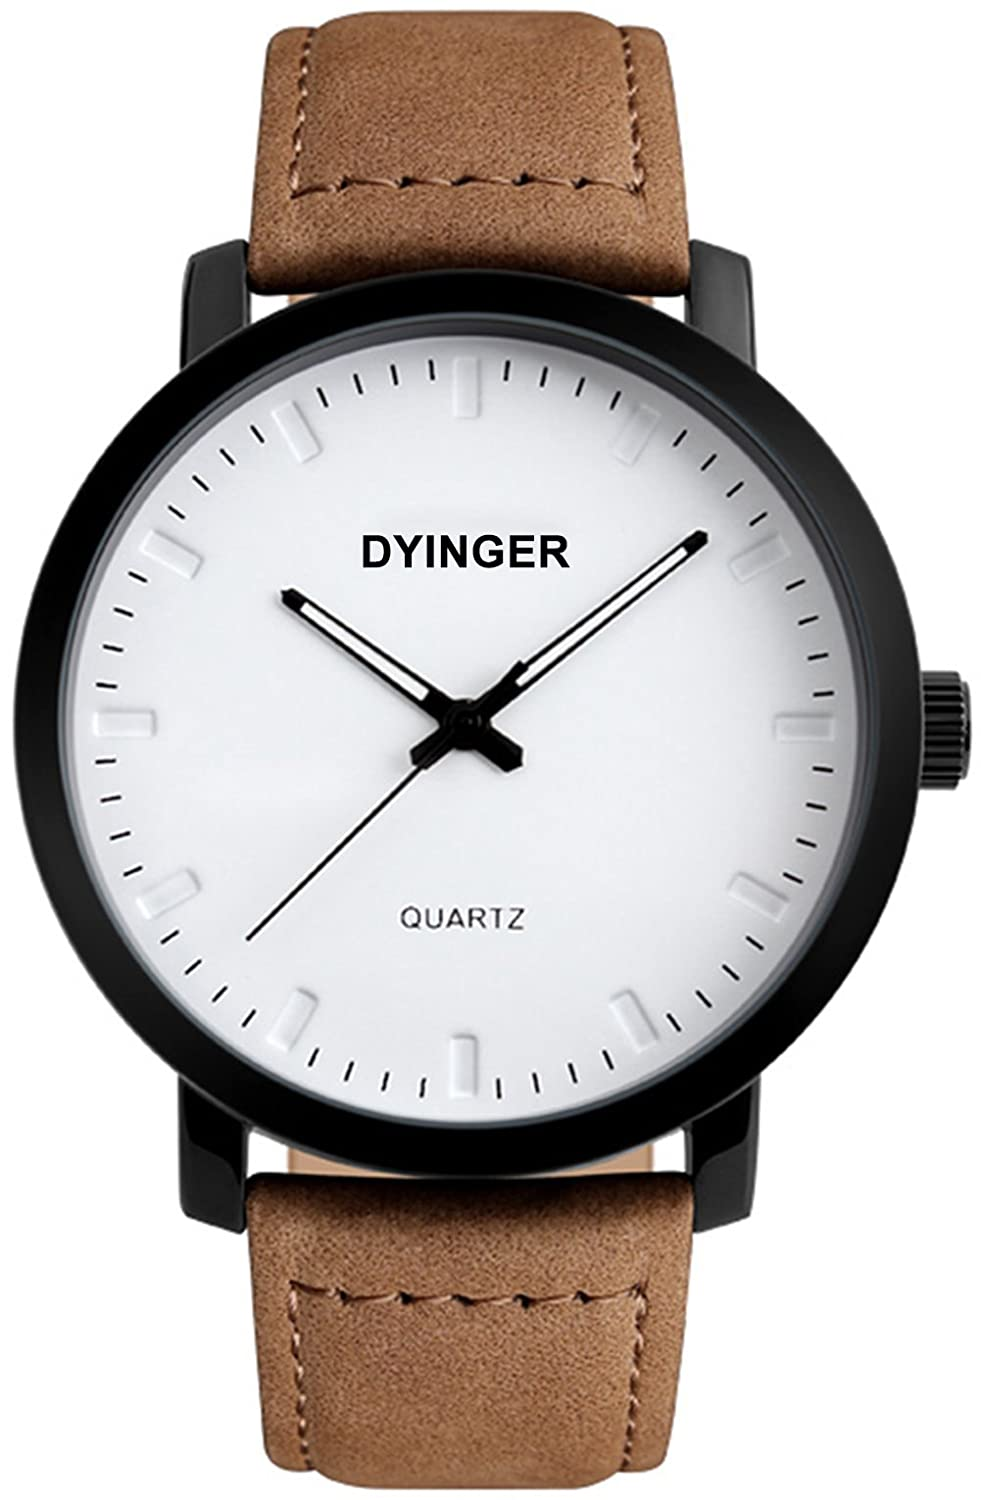 Mens Brown Leather Band Wrist Watch, Minimalist Analog Quartz Watch Classic Fashion Dress Watches For Men by Dyinger